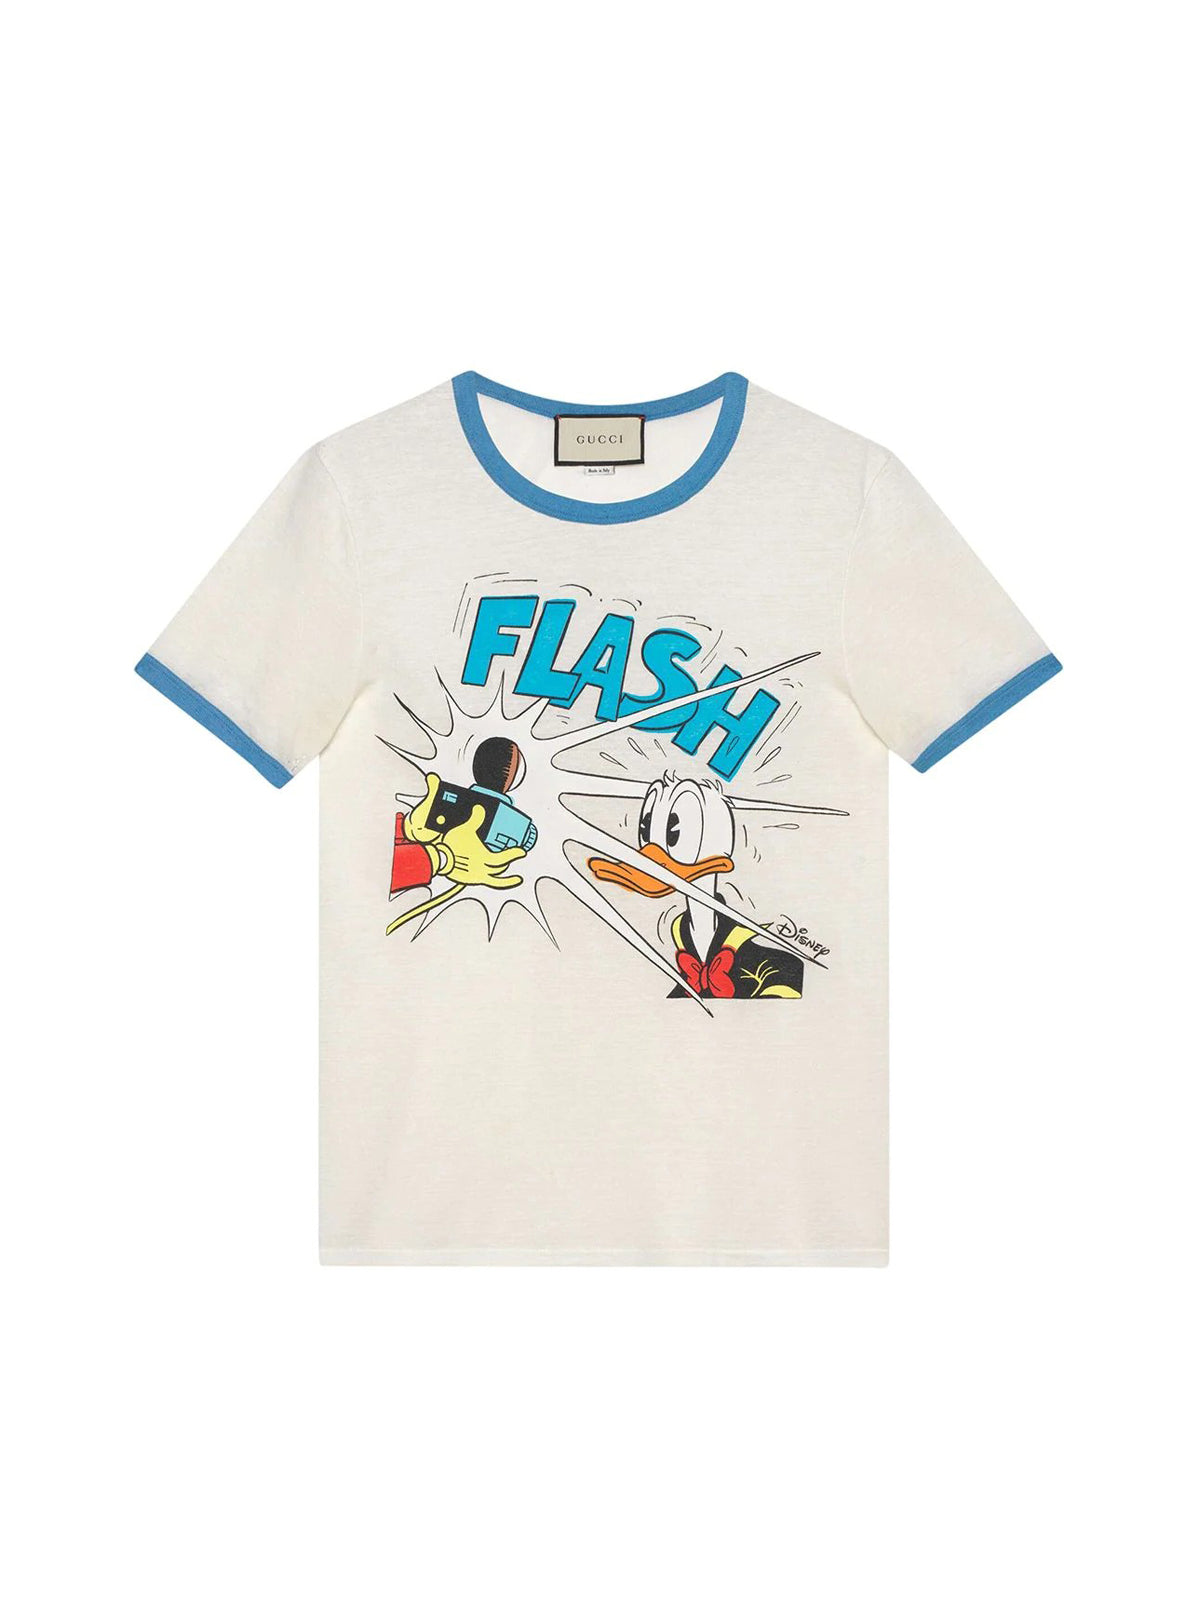 Gucci x Disney Donald Duck-print T-shirt